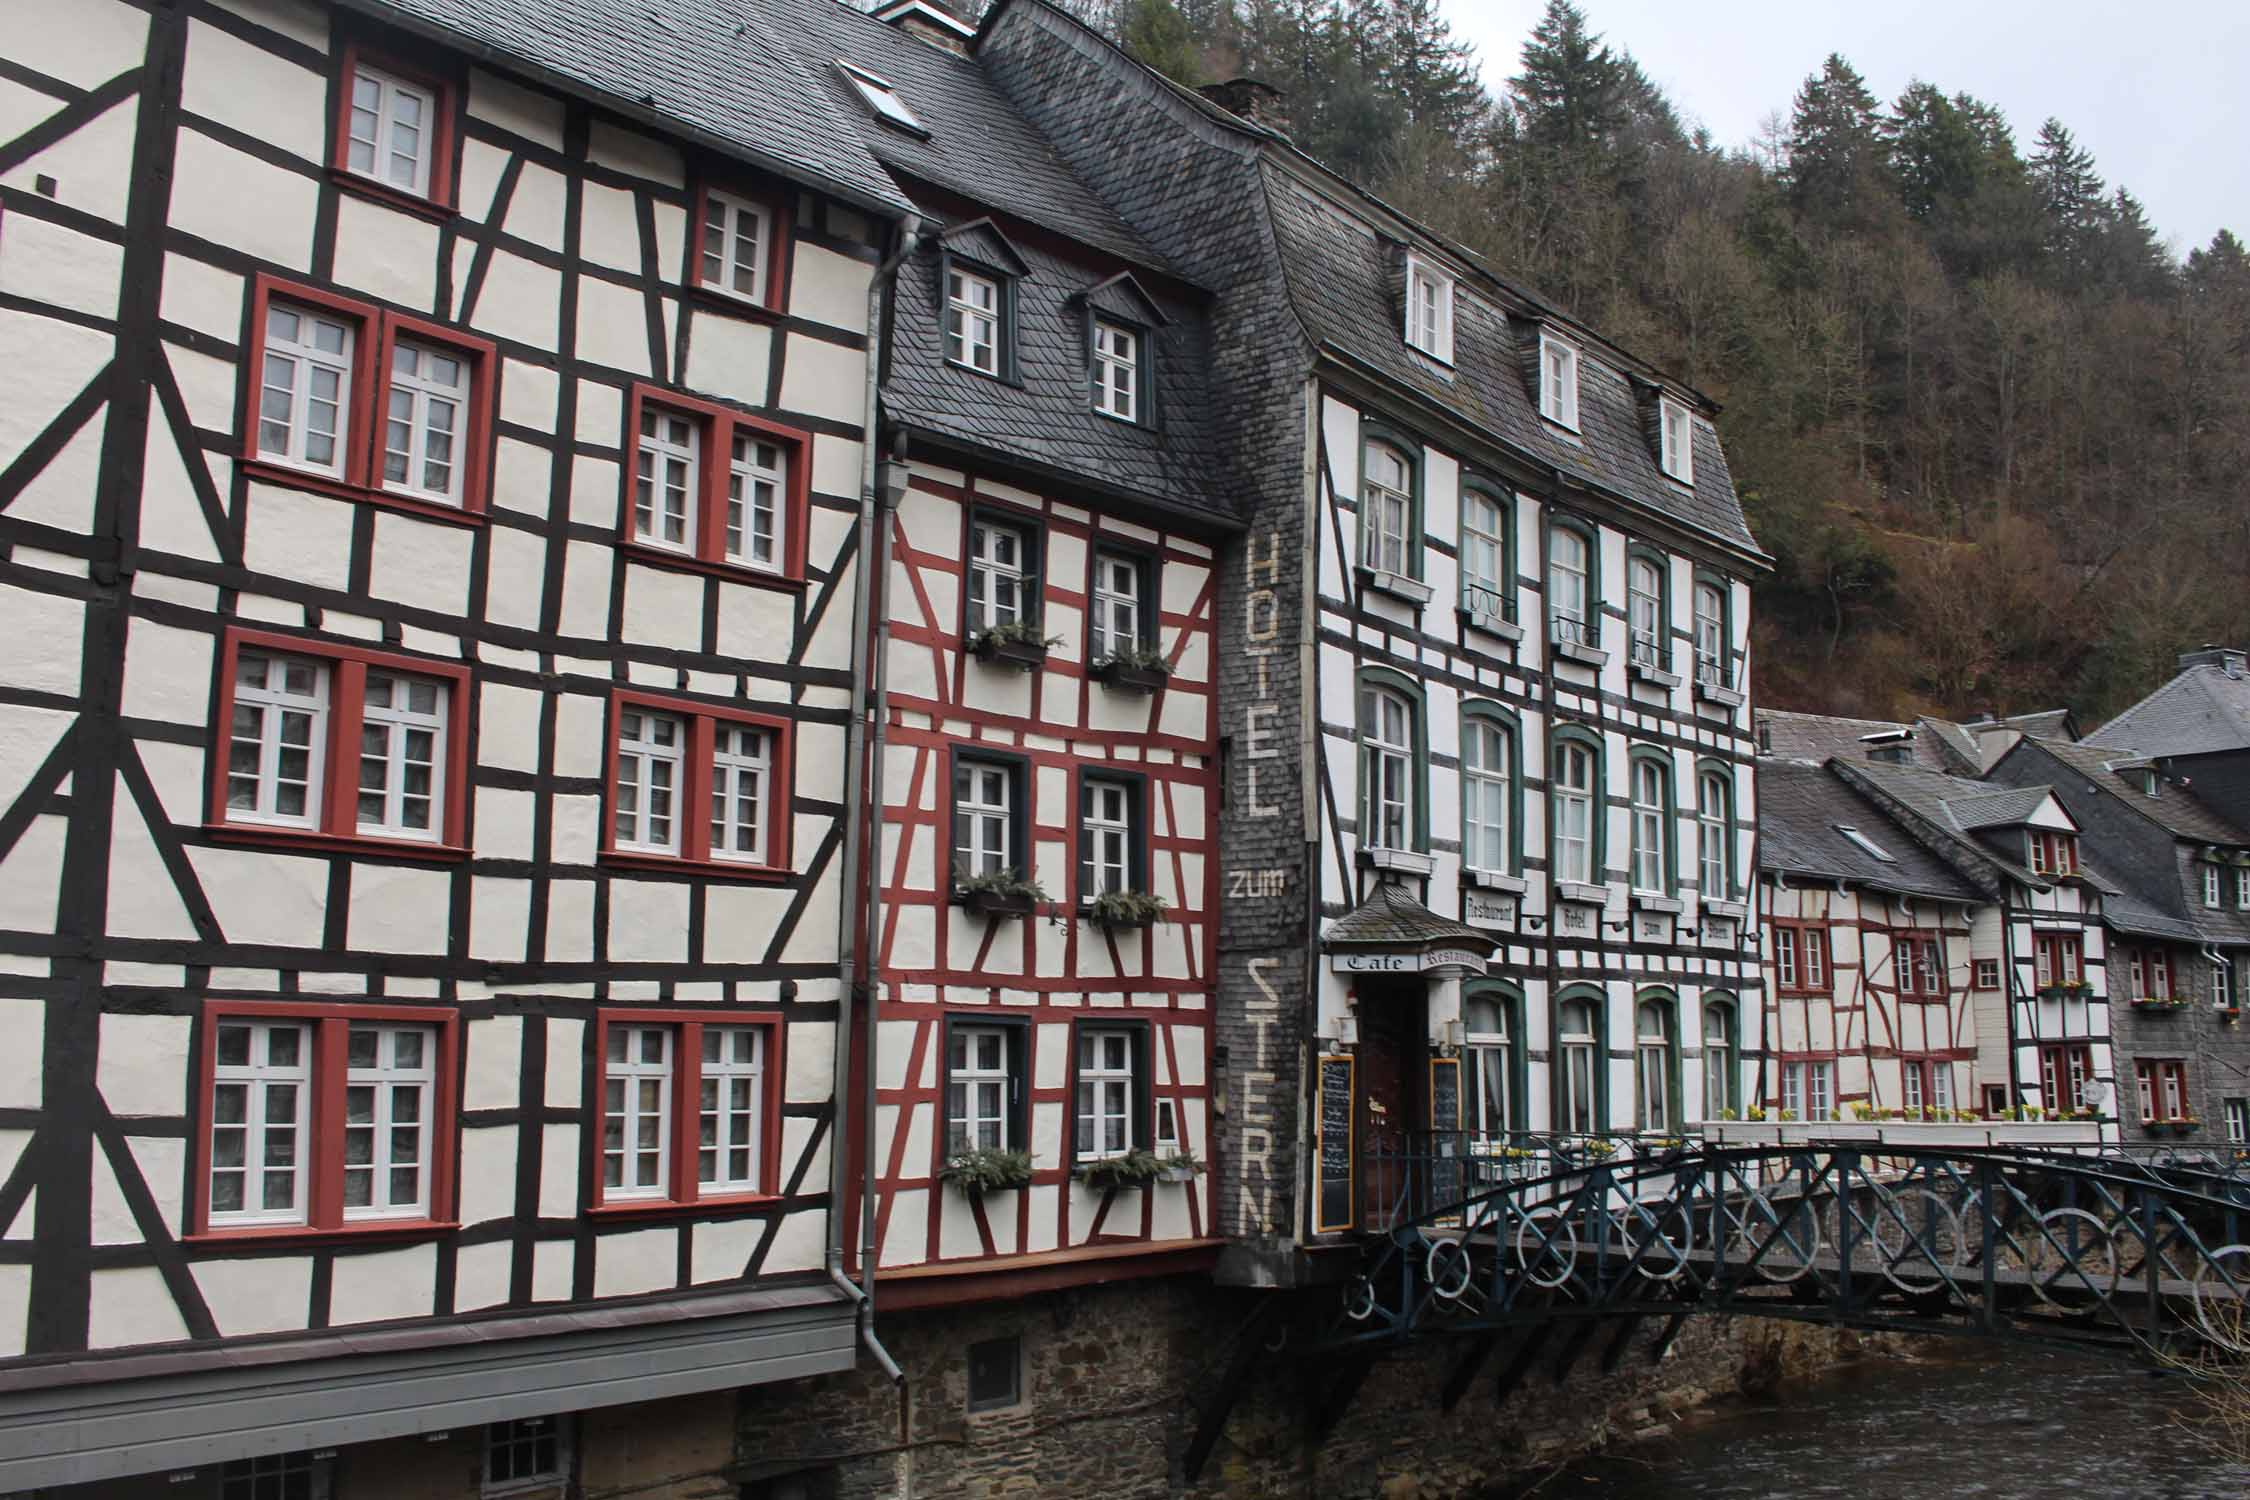 Monschau, half timbered houses, bridge